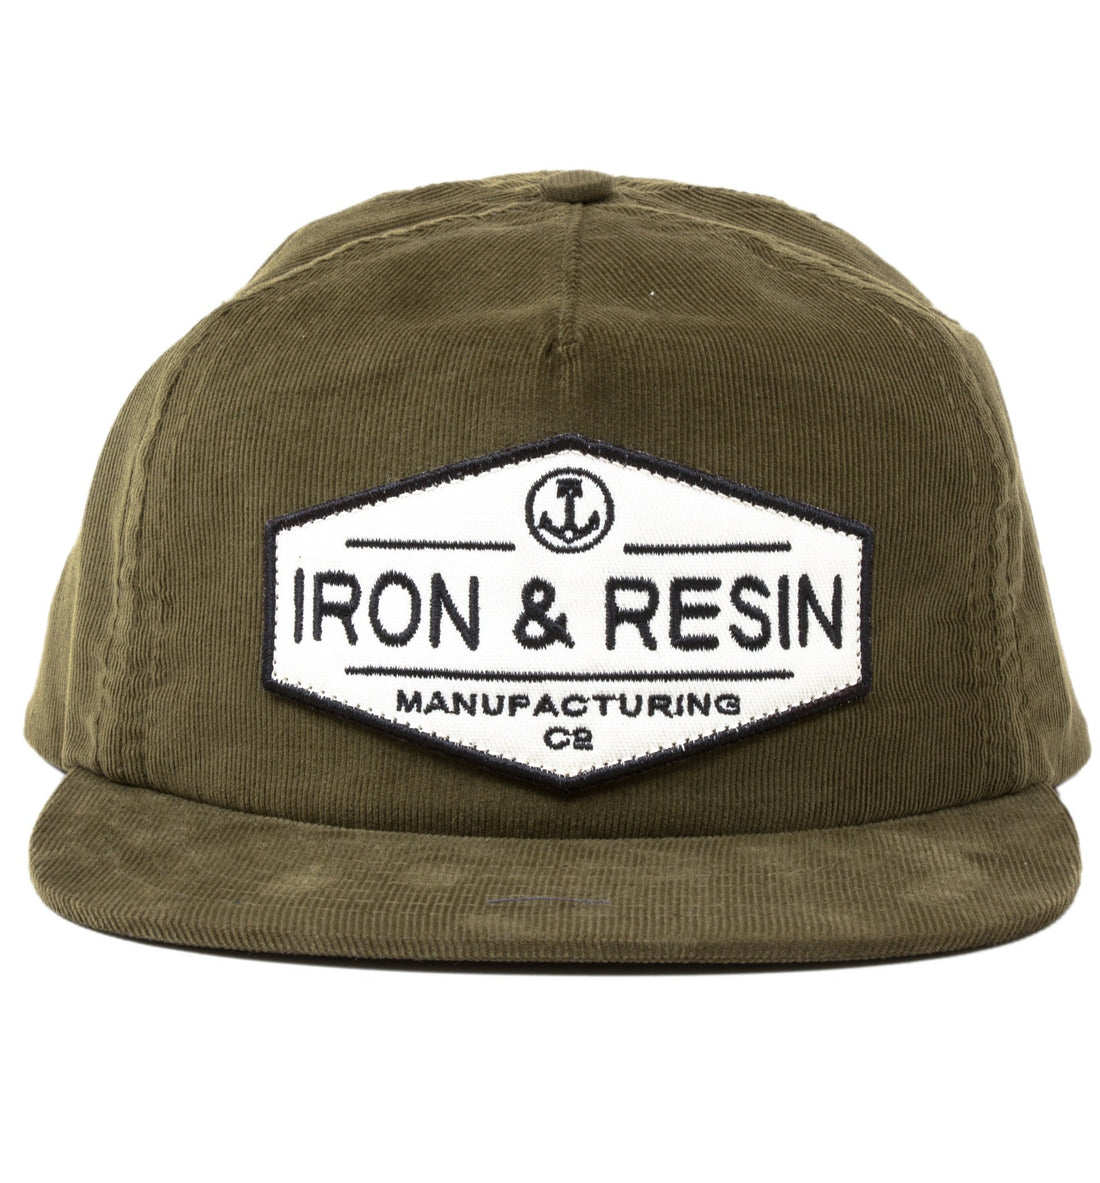 INR Terrain Hat - Accessories: Headwear: Hats - Iron and Resin